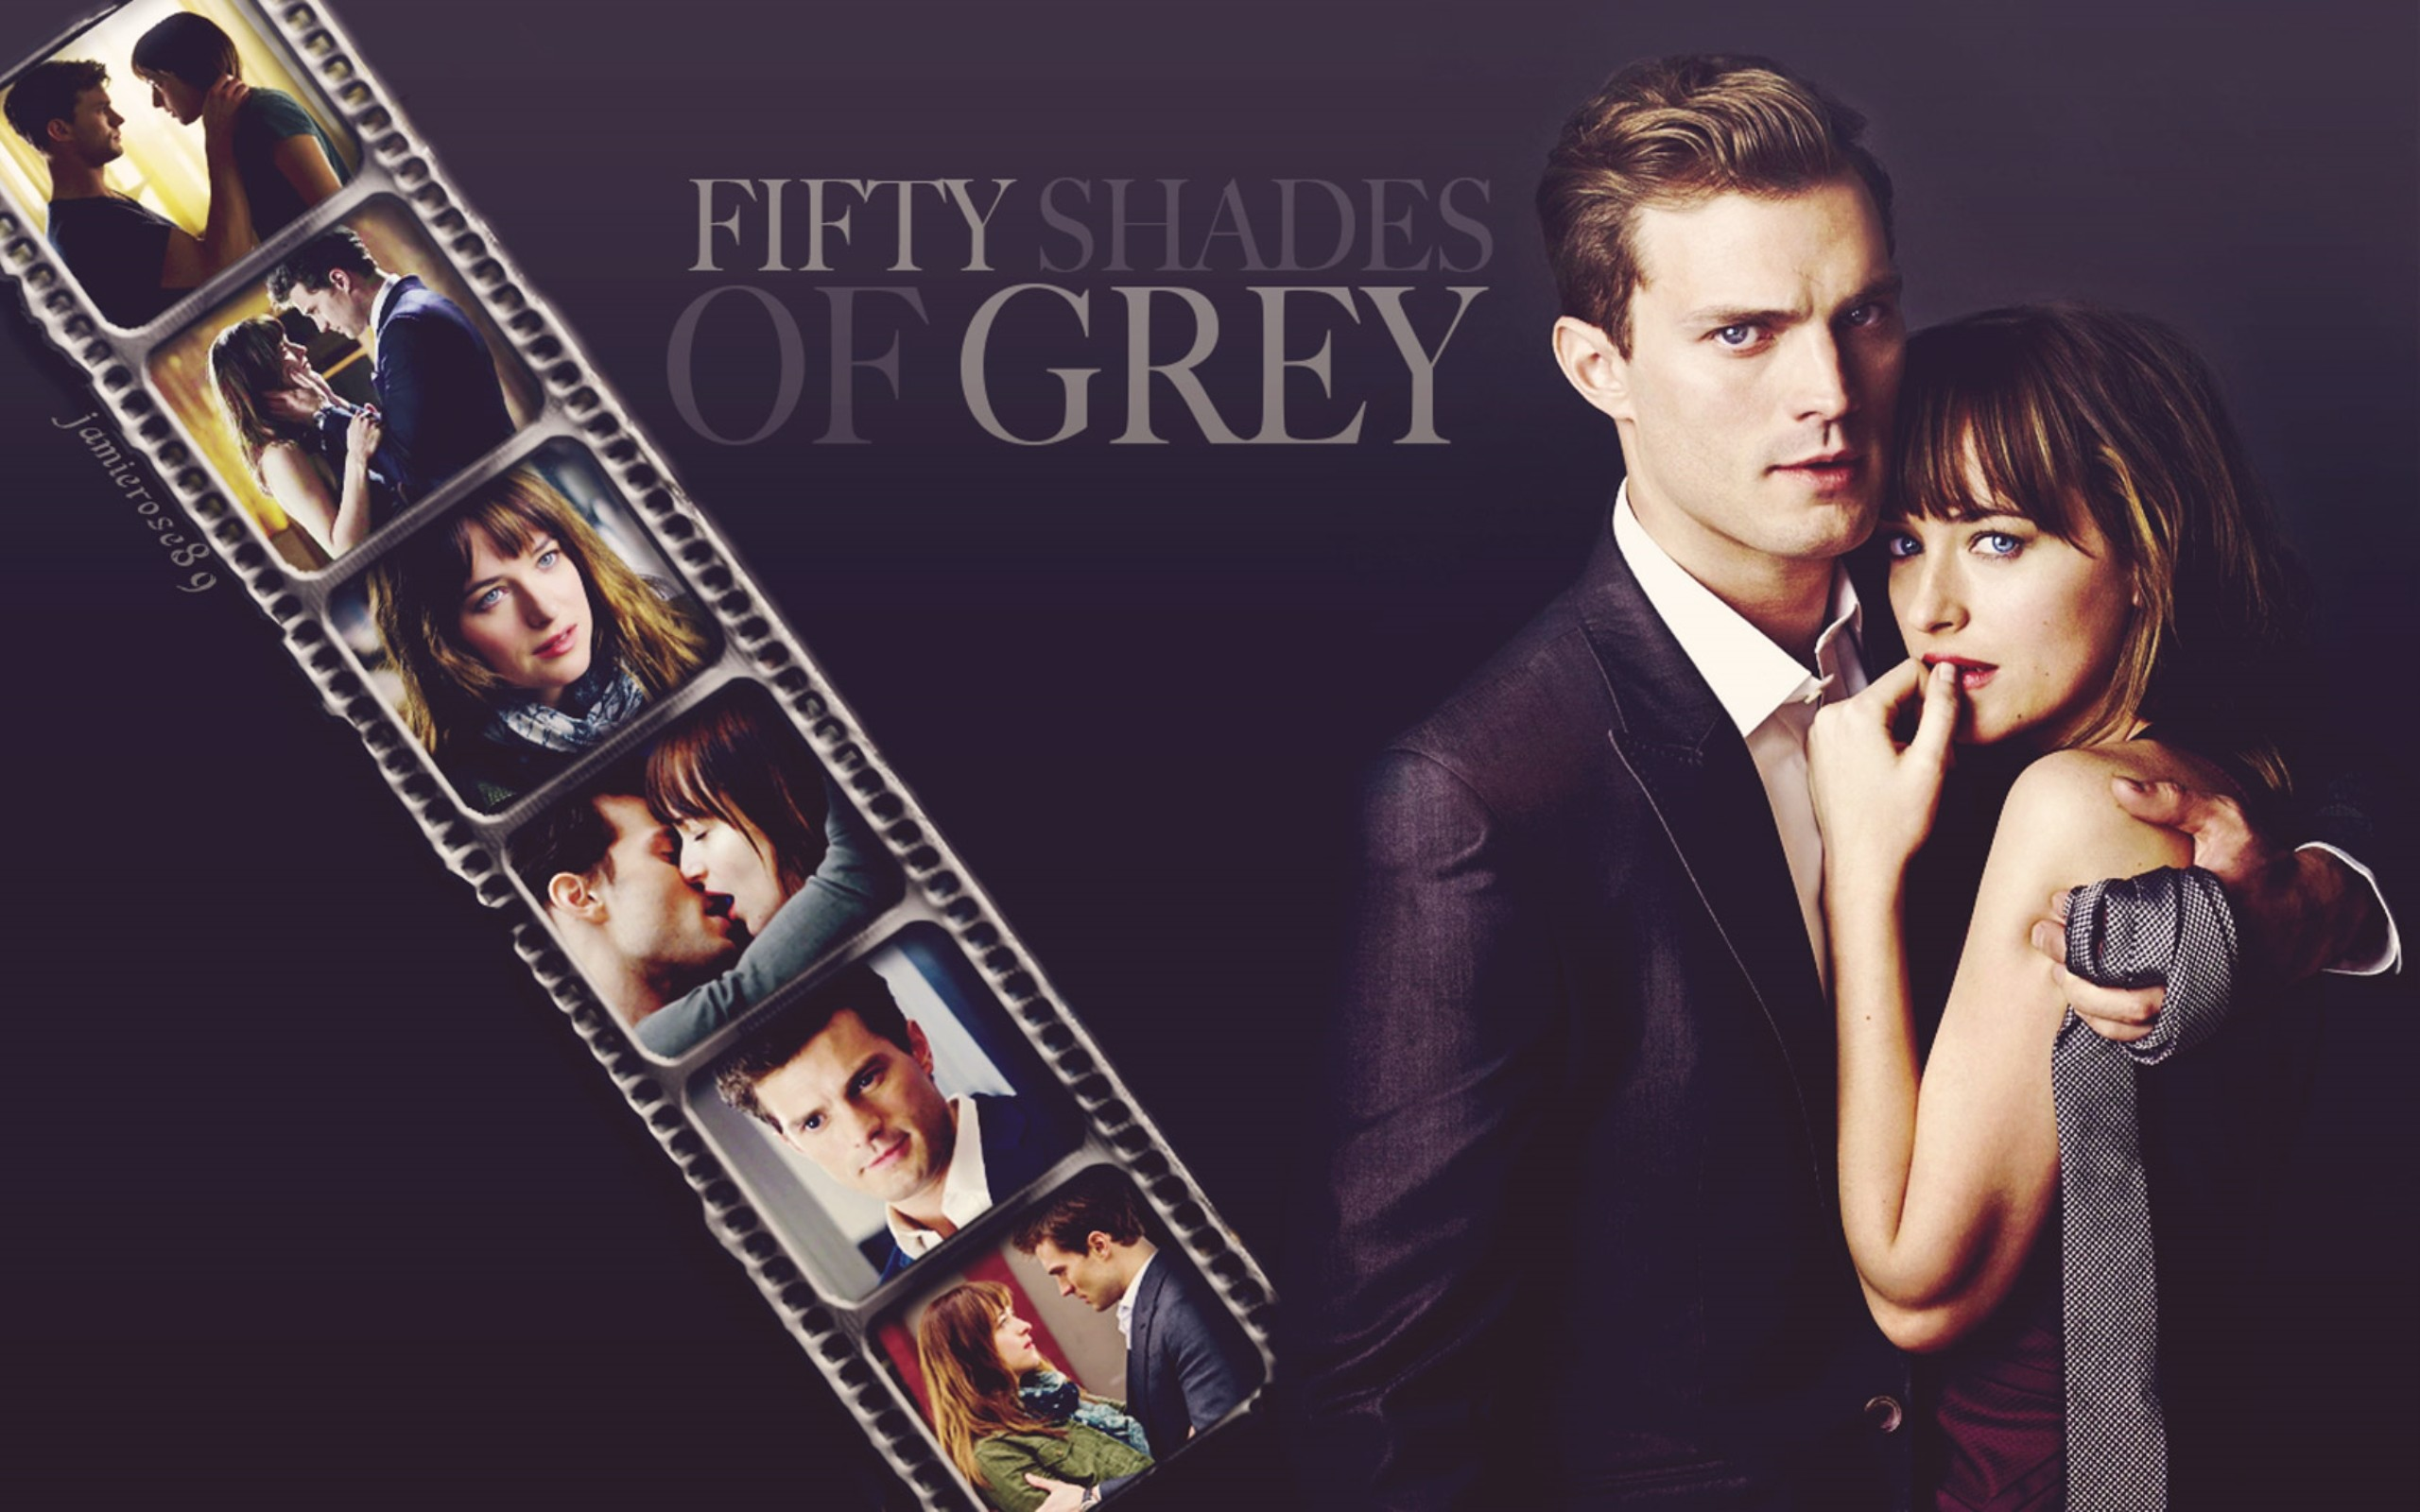 fifty shades of grey free download 720p